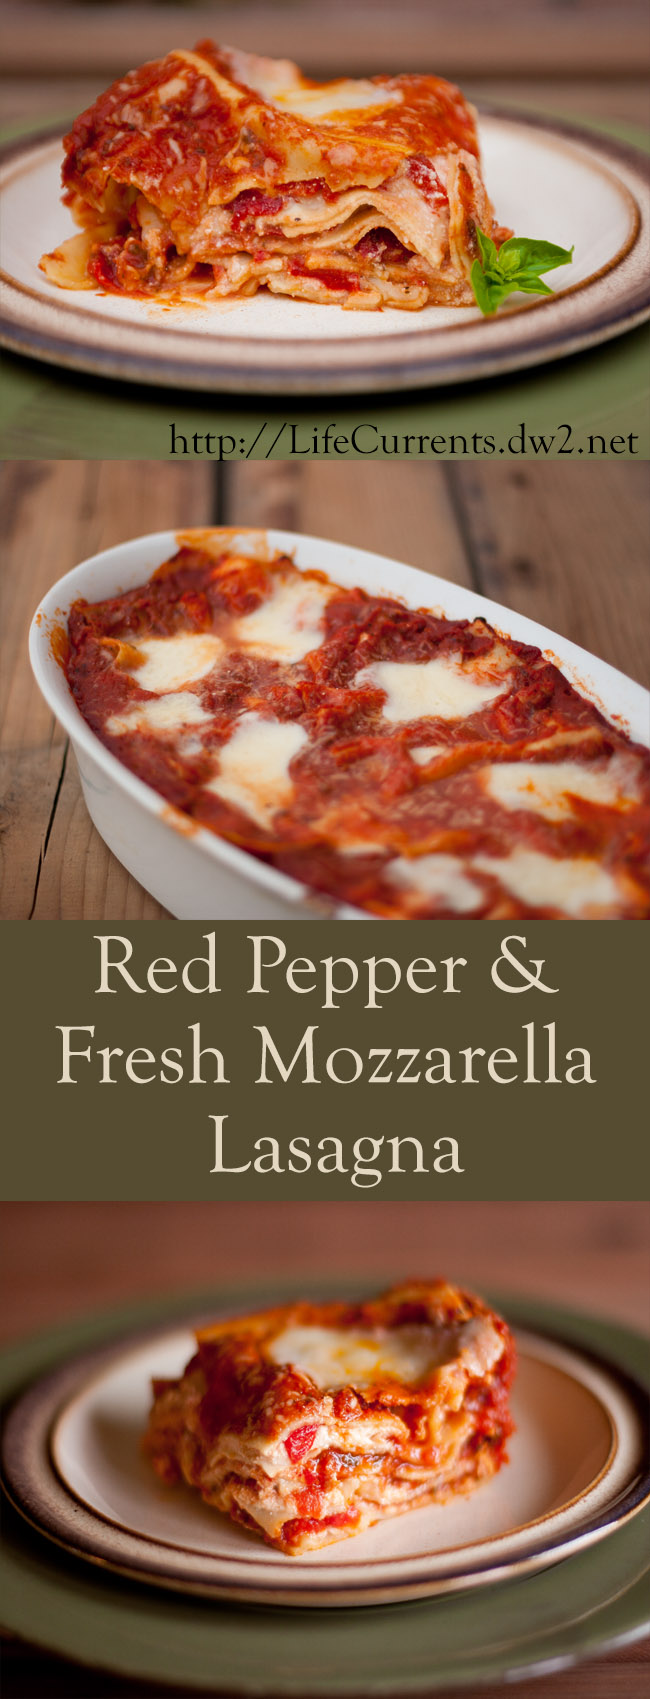 Red Pepper and Fresh Mozzarella Lasagna Recipe